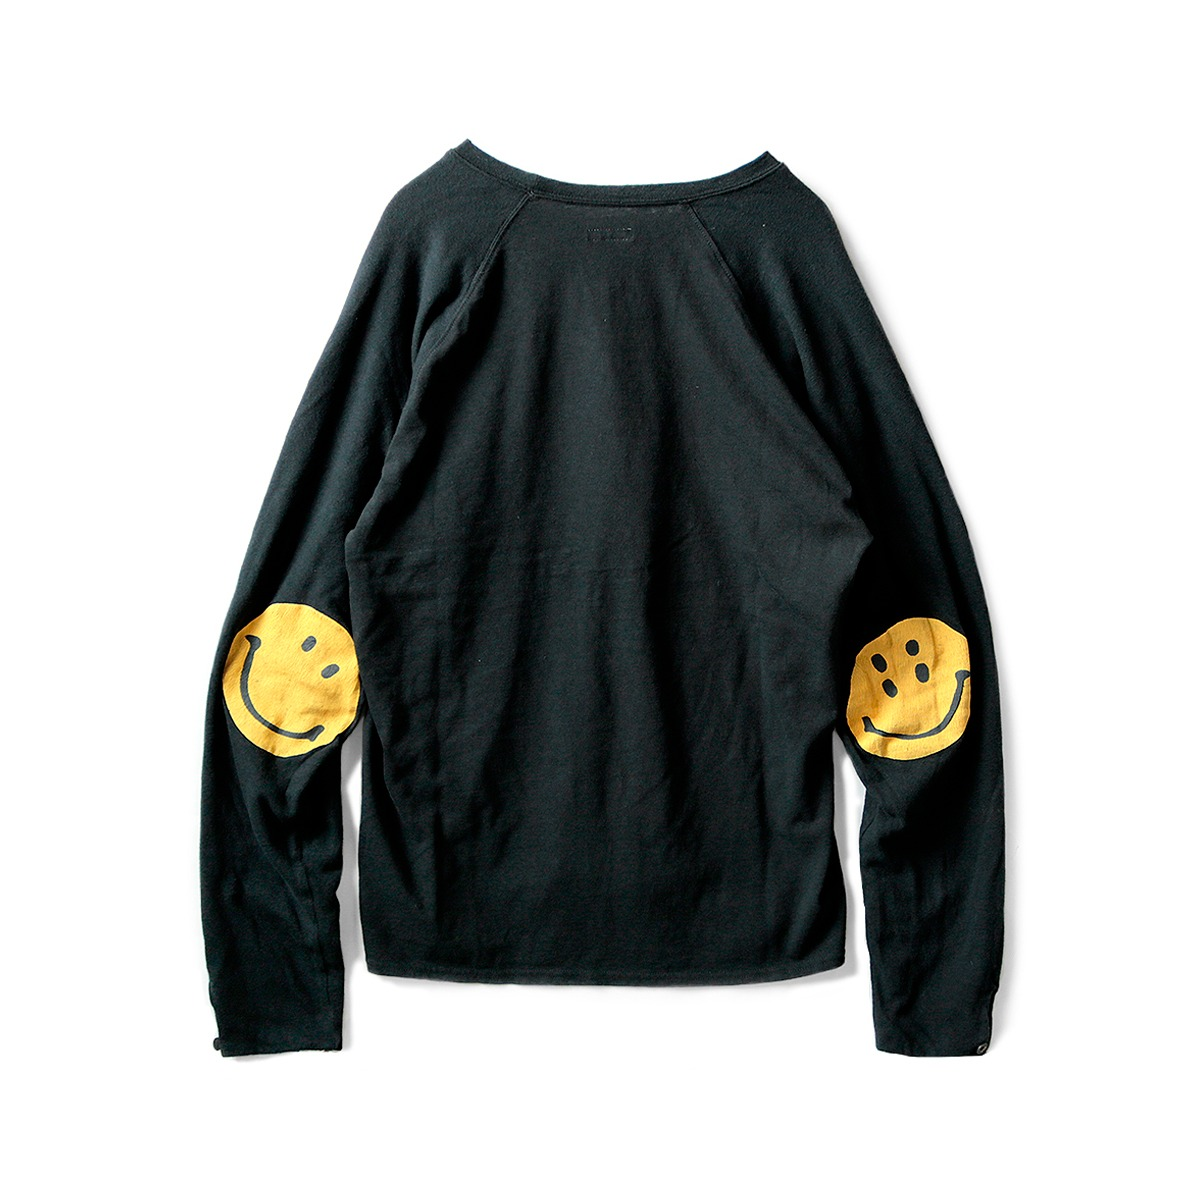 [KAPITAL] JERSEY x GAUZE JERSEY CHEF SLEEVE LONG SLEEVE T (SMILIE PATCH) 'BLACK'